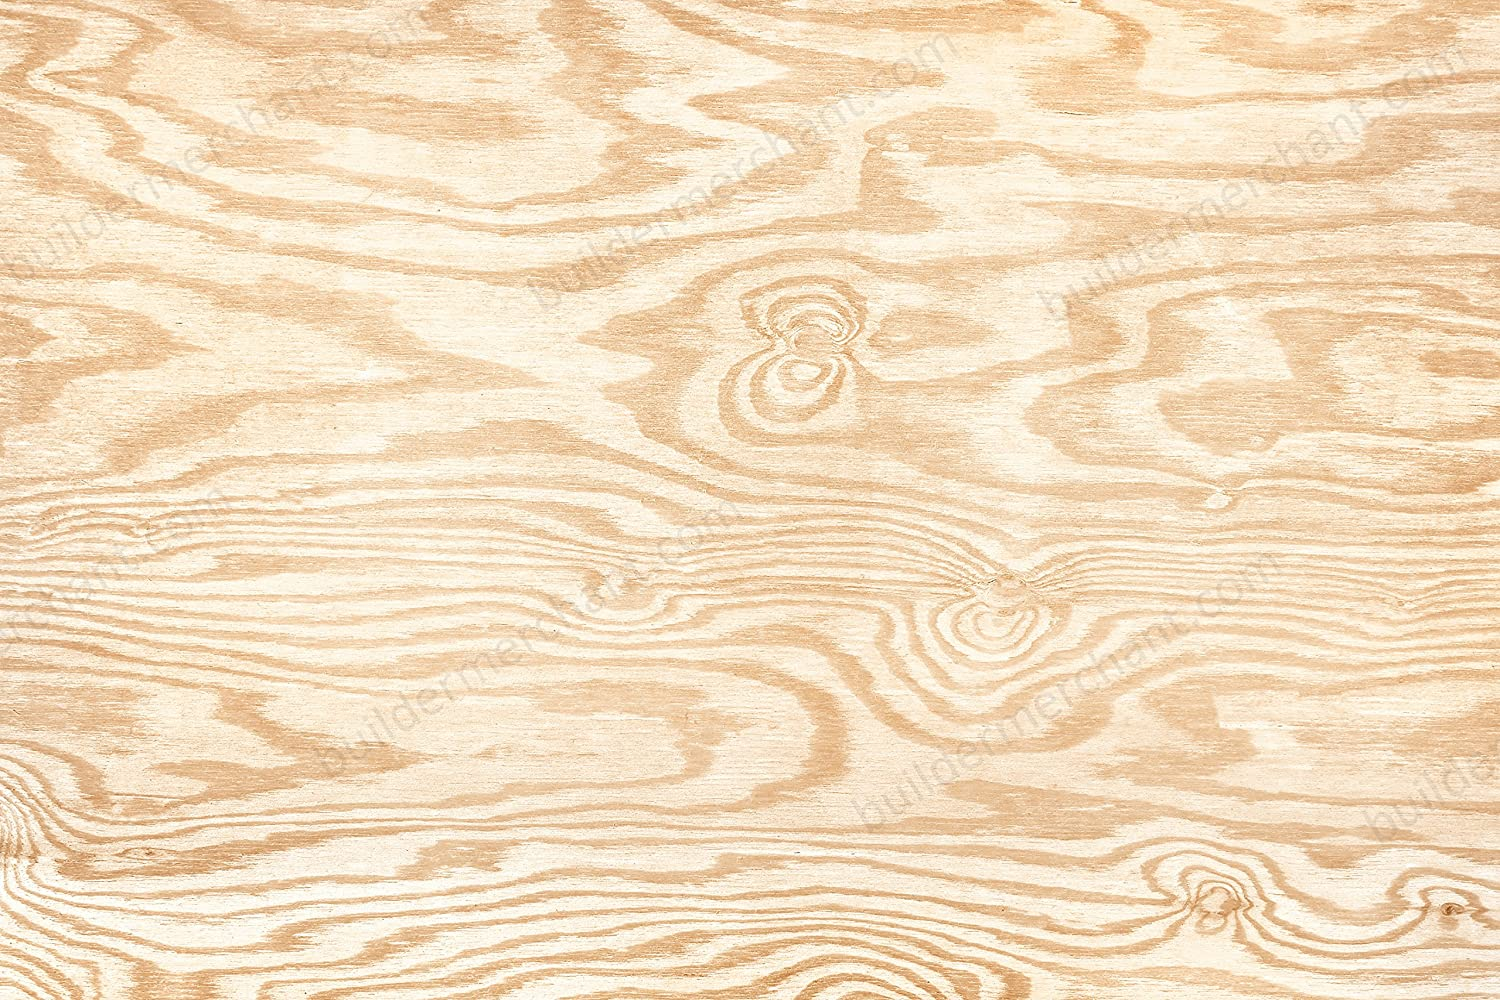 4ft x 2ft Builder Merchant Softwood Plywood 9mm 4x2ft Ply 2x4ft 1220mm x 610mm Package Quantity: 1 Sheet